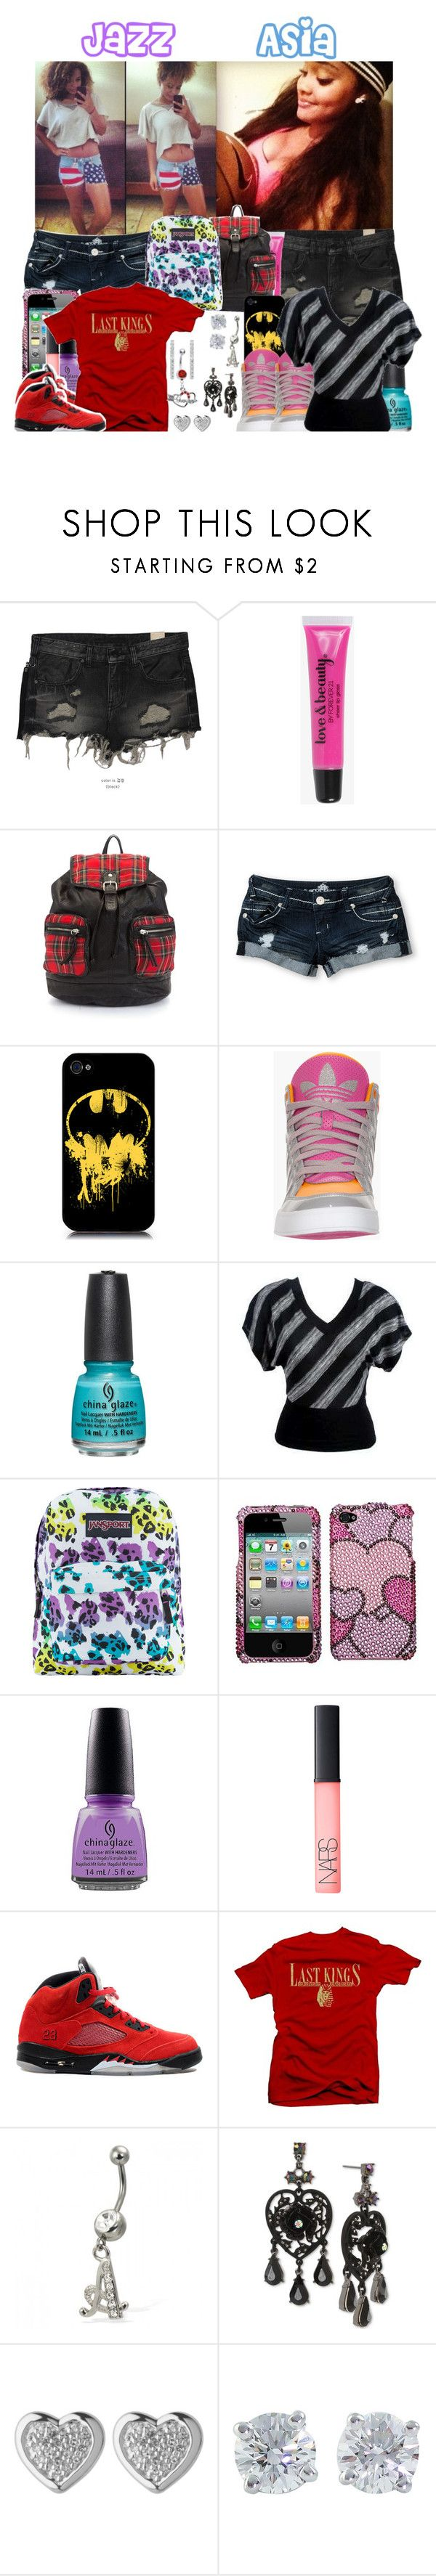 """1st Day of School"" by blvck-barbie ❤ liked on Polyvore featuring BBon-J, Forever 21, Almost Famous, adidas, China Glaze, JanSport, OPI, NARS Cosmetics, Retrò and Royalty Collection"